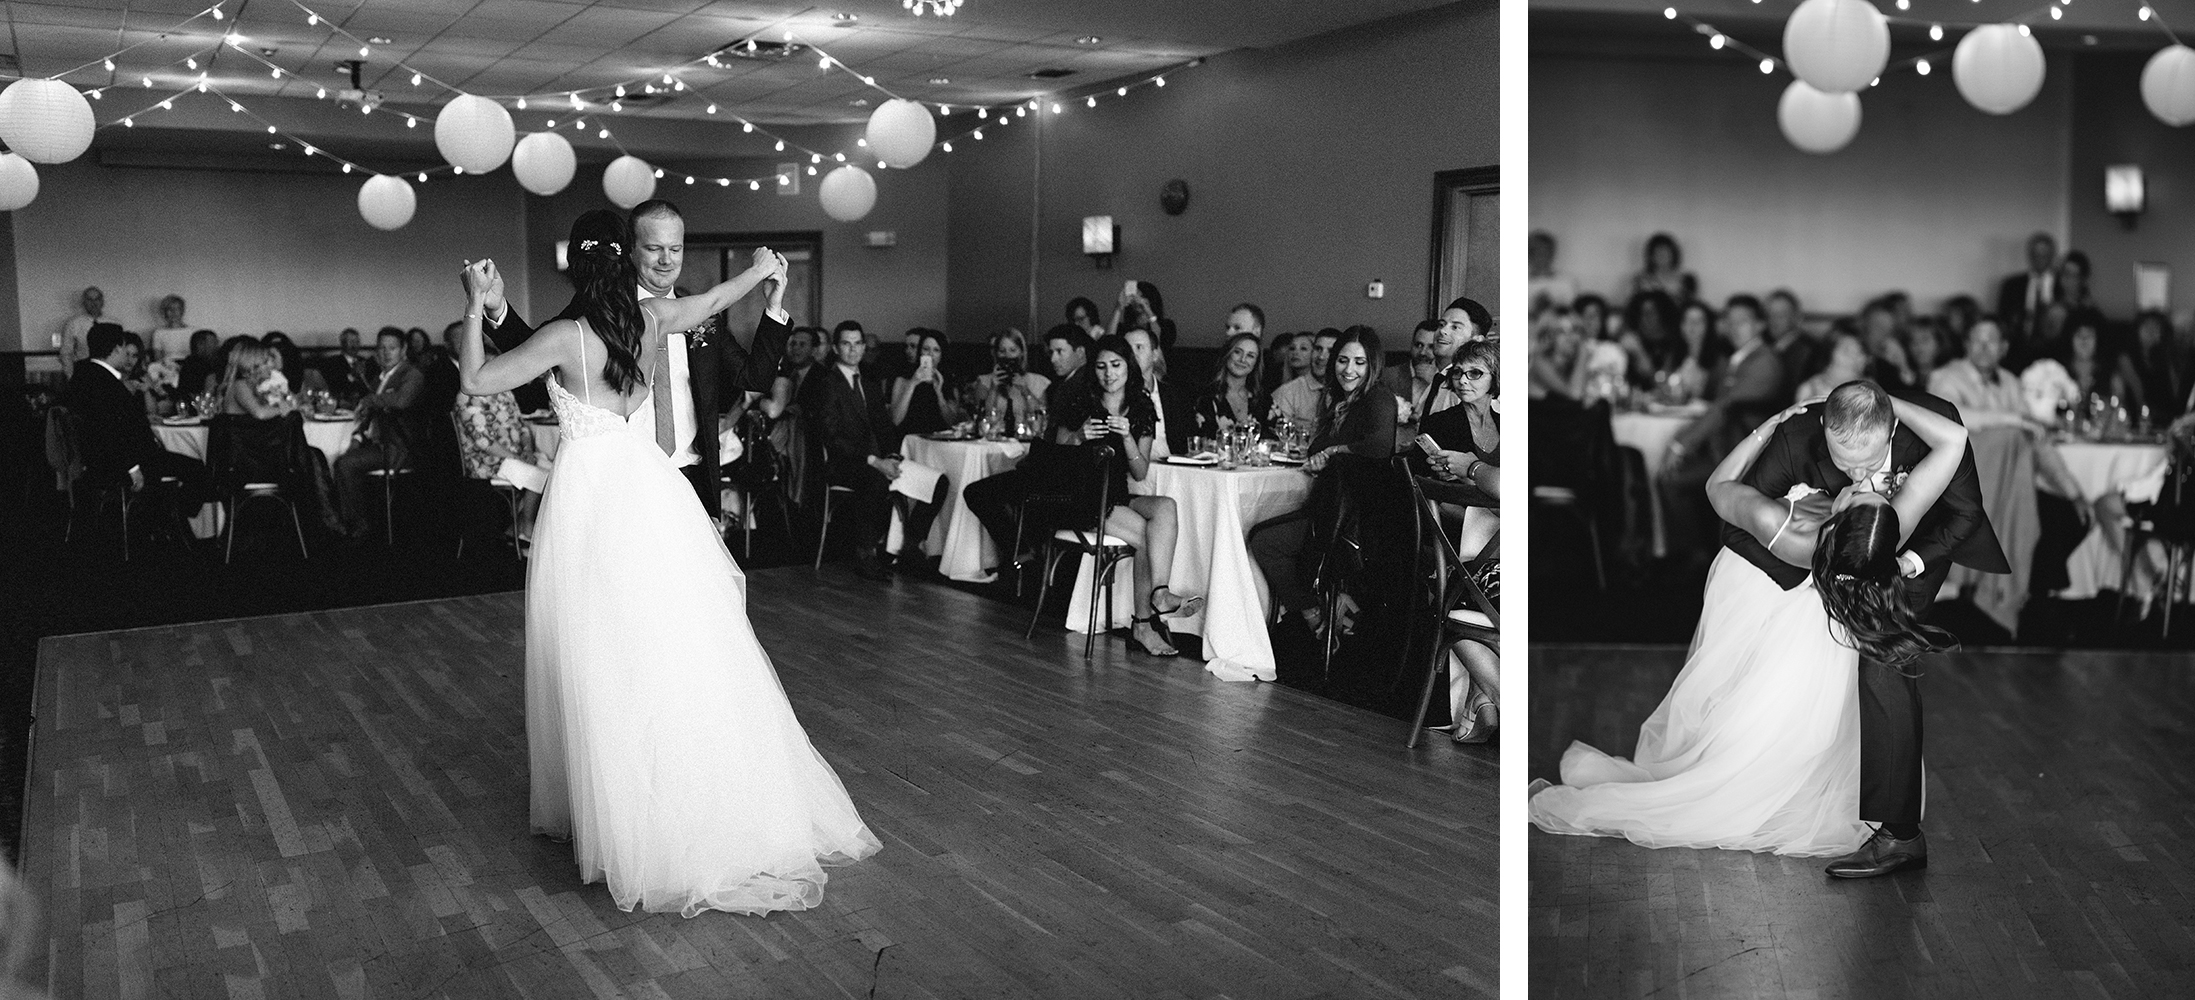 23-bride-and-groom-first-dance-choreographed-dip-during-reception-At-Eganridge-Resort-Venue-Muskoka-Ontario-Wedding-Photography-by-Ryanne-Hollies-Photography-Toronto-Documentary-Wedding-Photographer.jpg